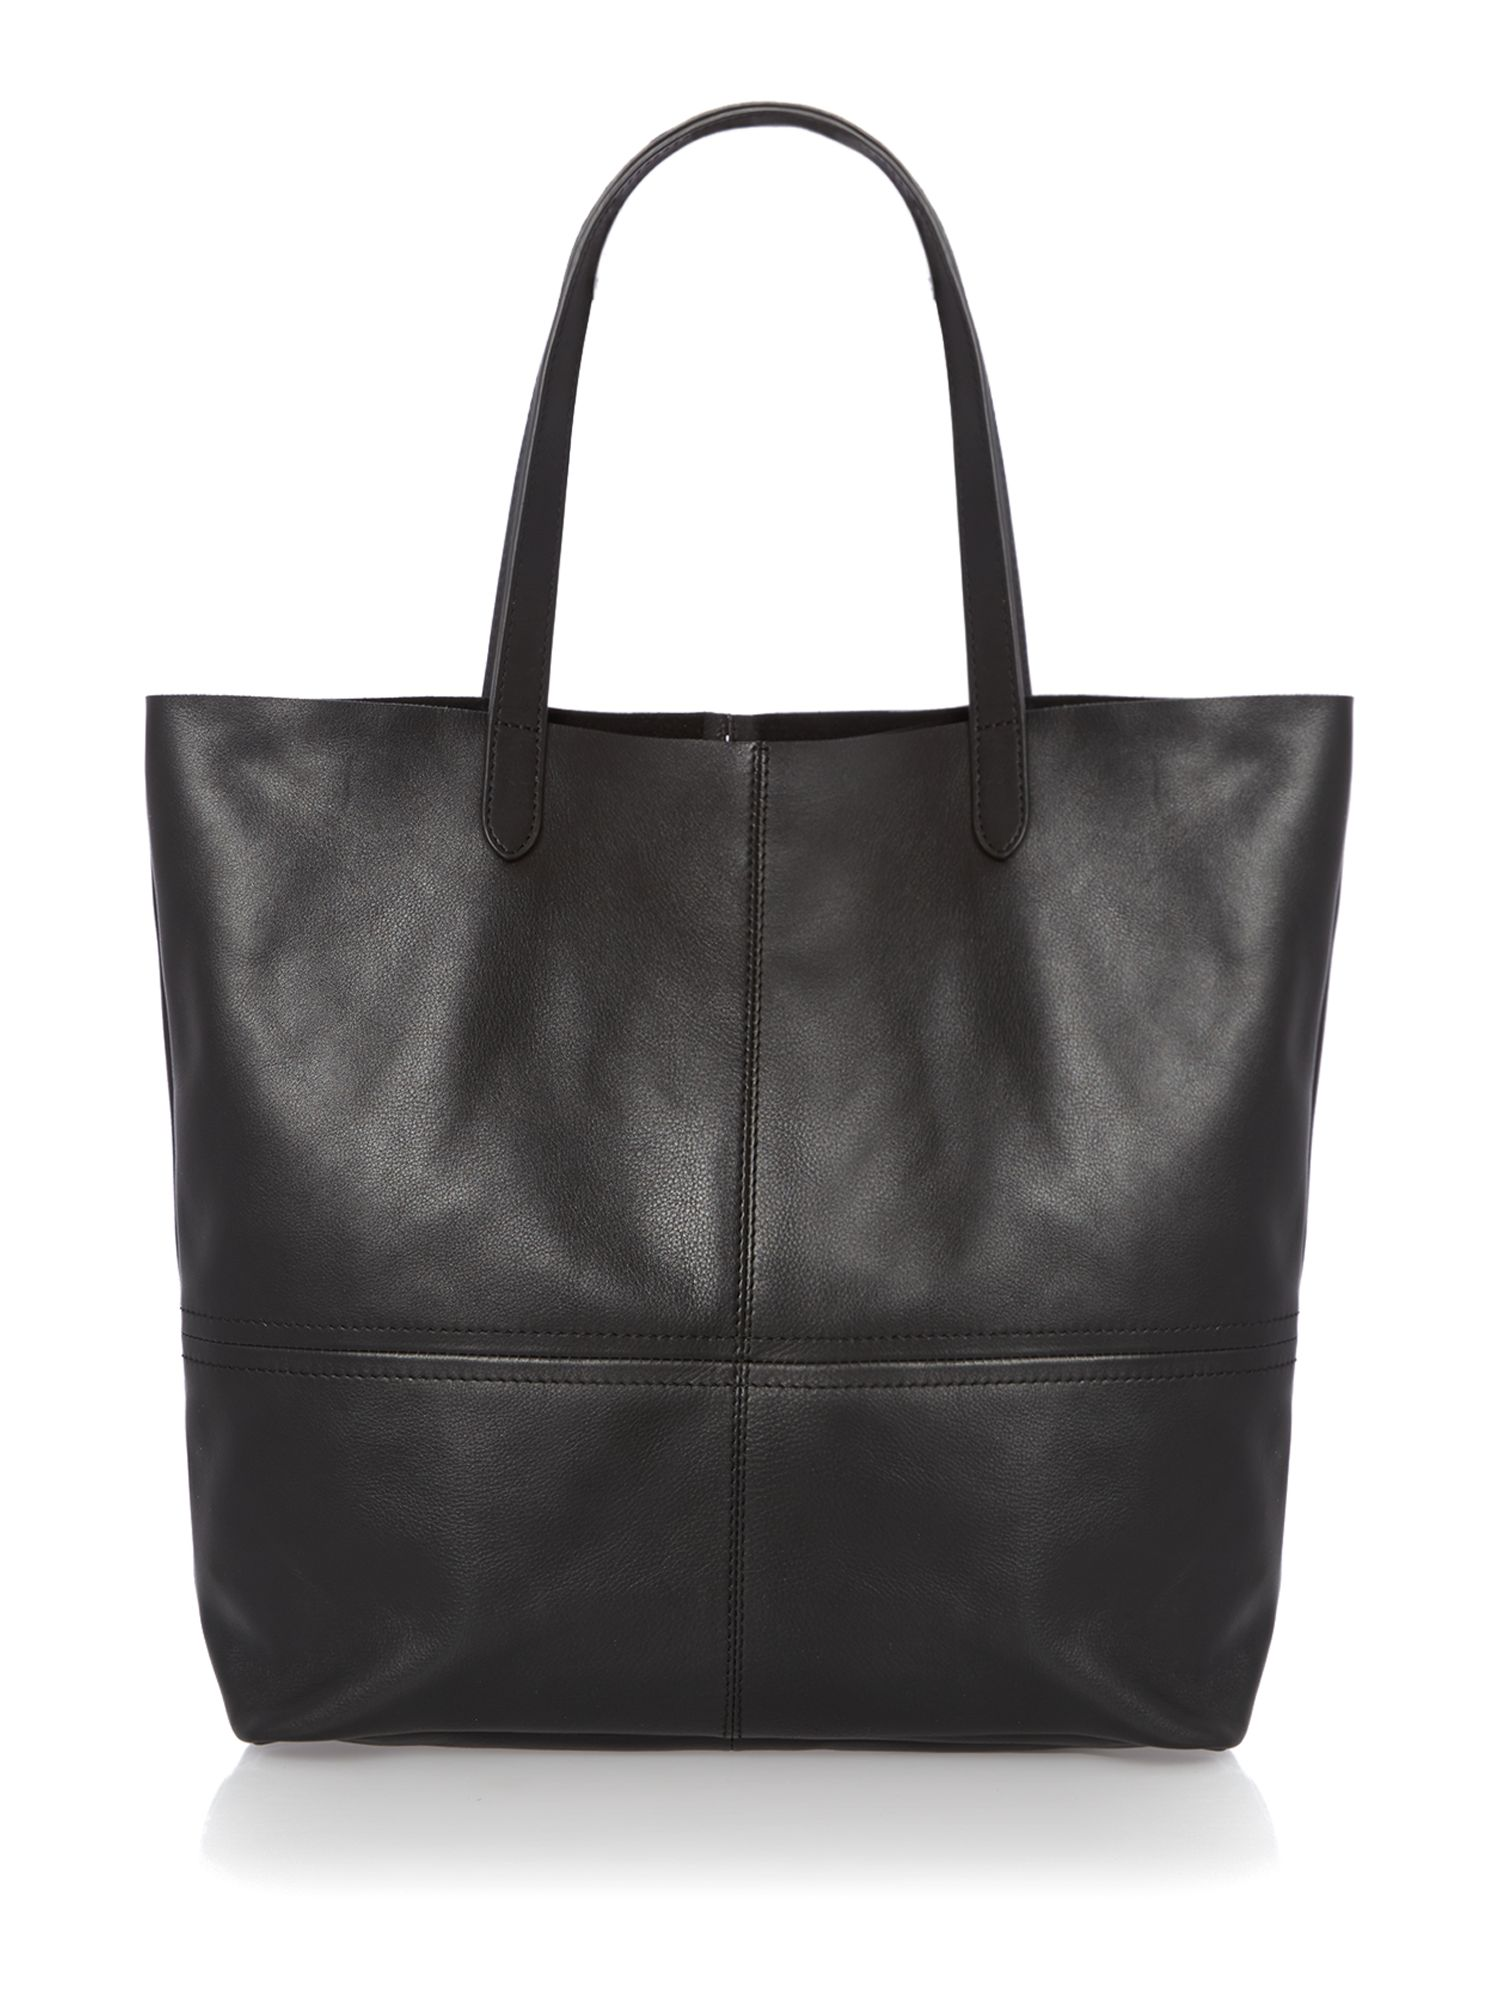 Unlined tote bag